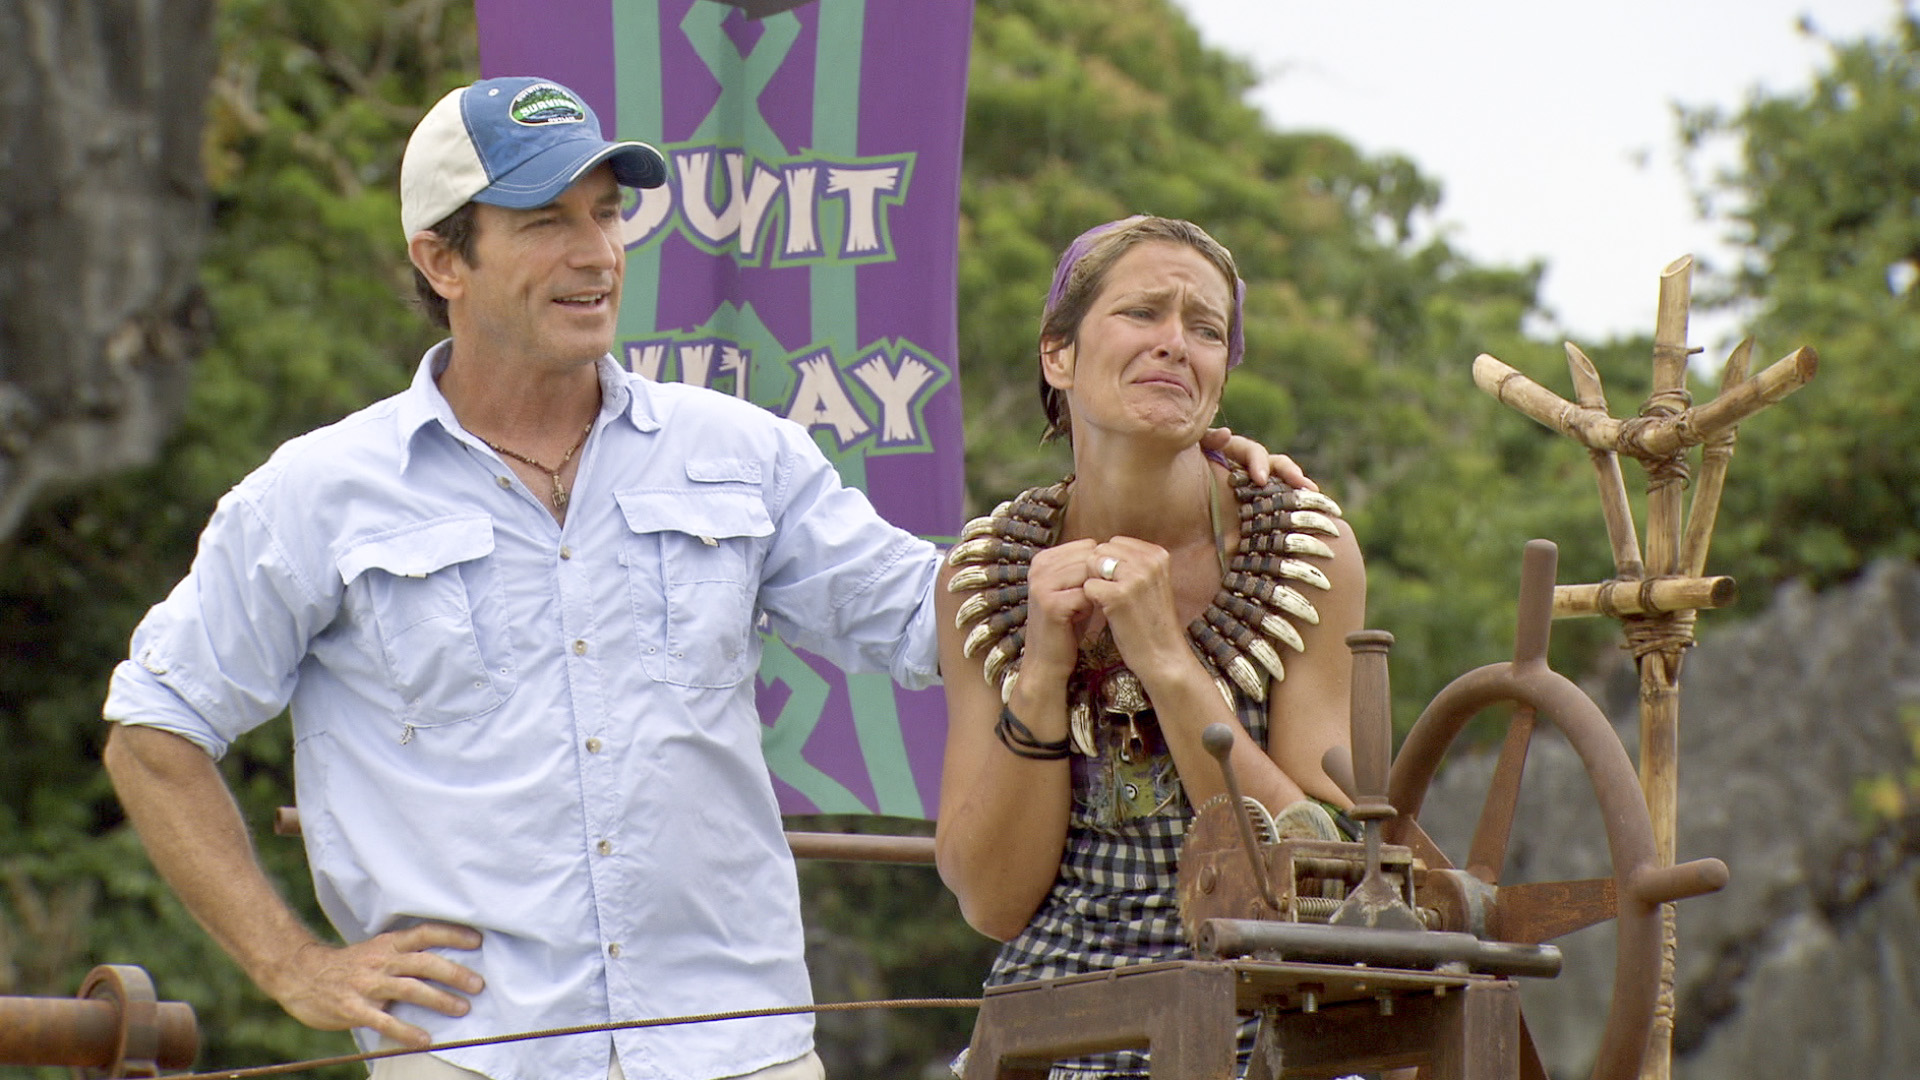 Dawn wins immunity in